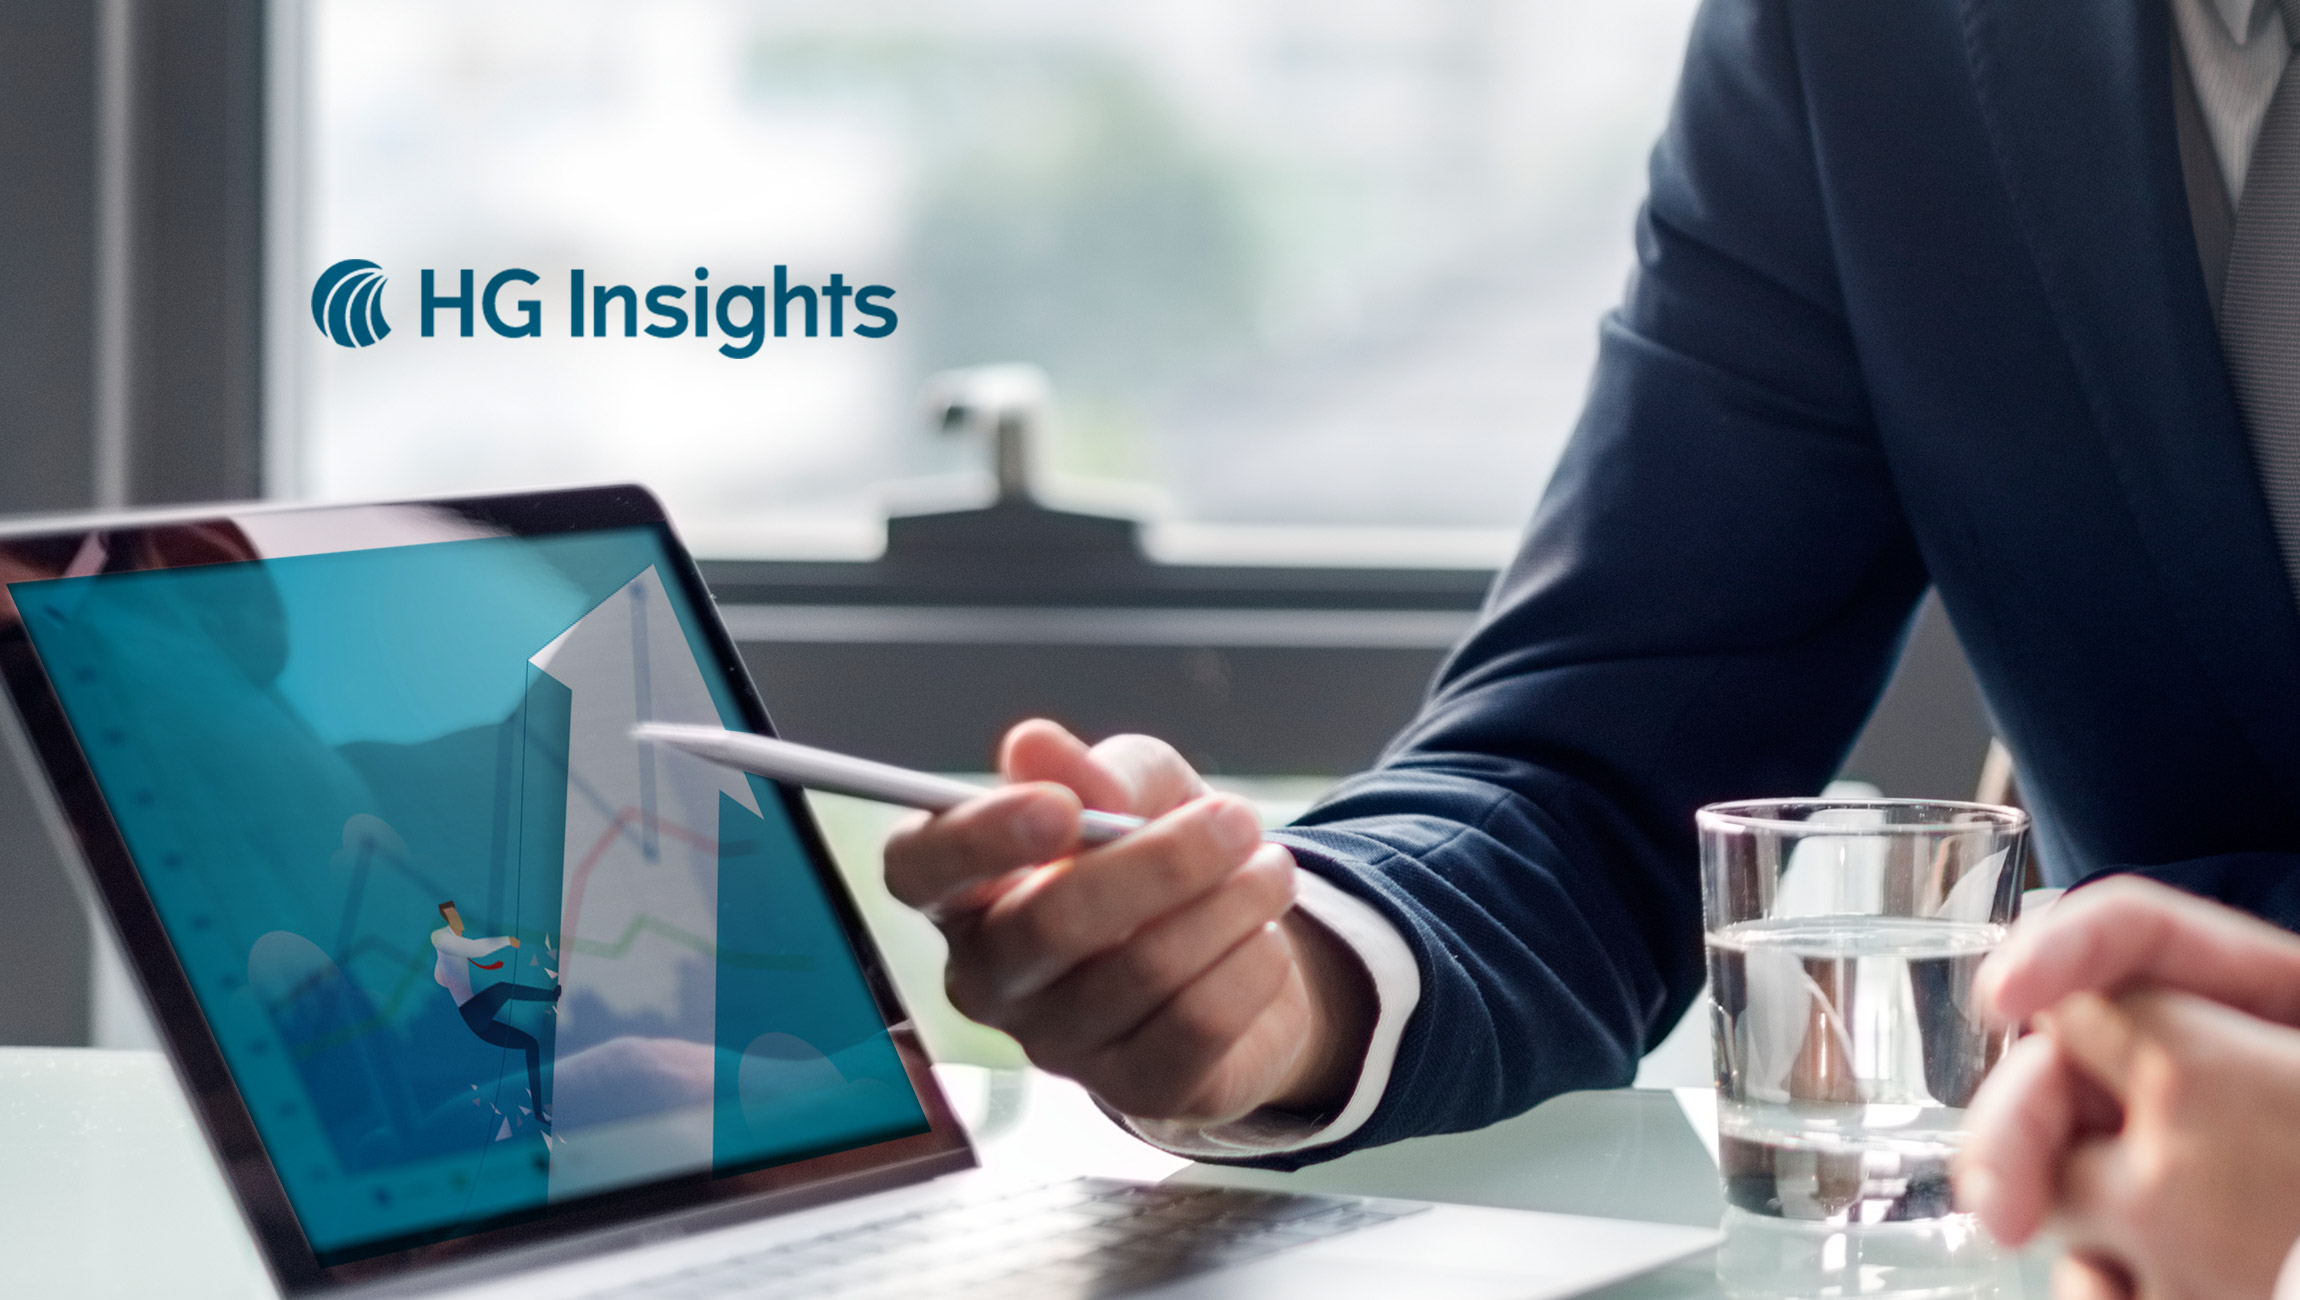 HG Insights Fuels Precision Marketing and Sales Programs at Scale with Marketo Engage